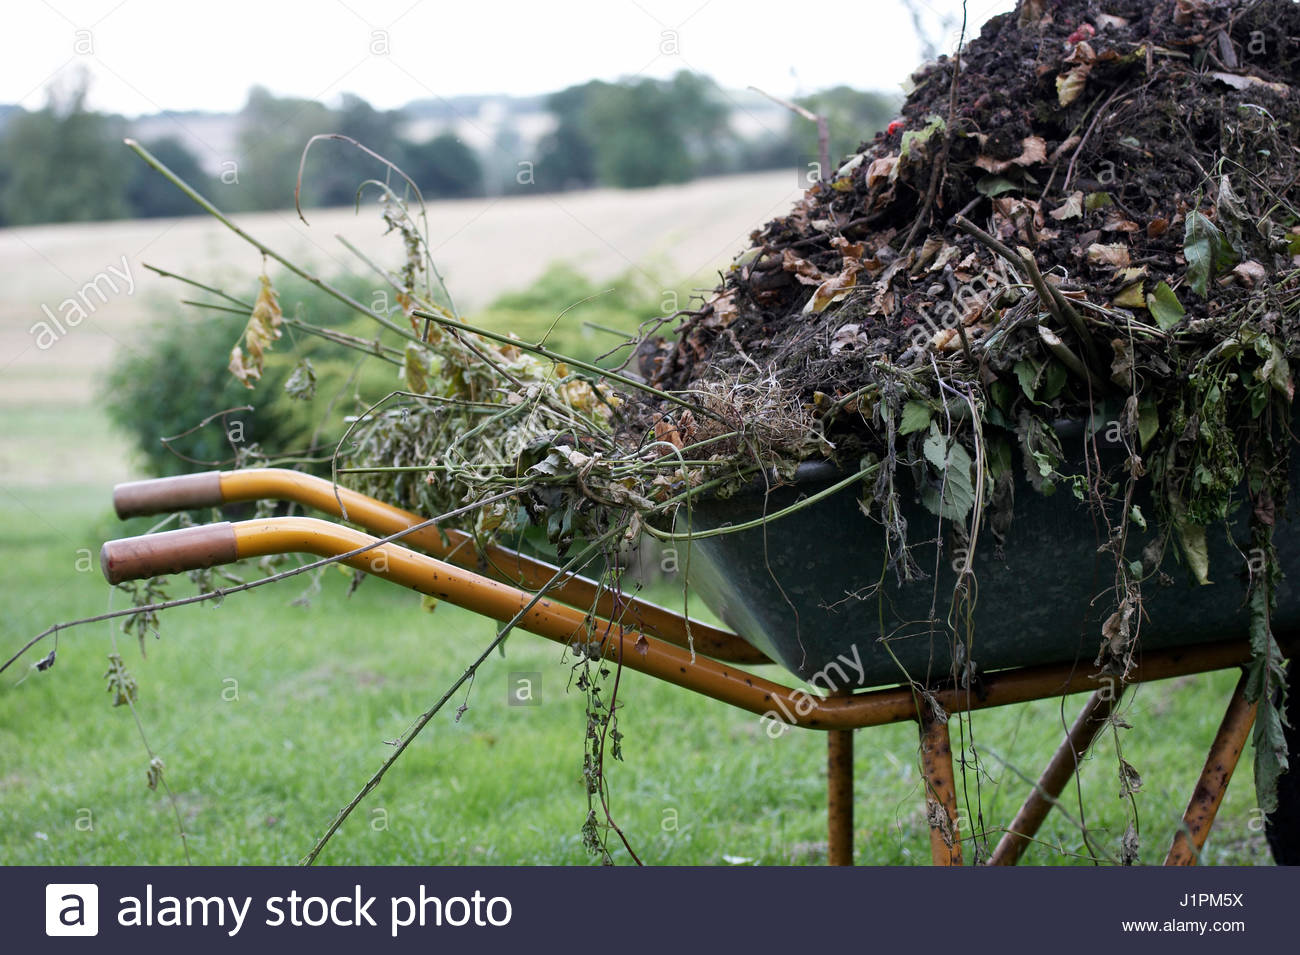 WHEELBARROW FULL OF GARDEN CLIPPINGS. - Stock Image